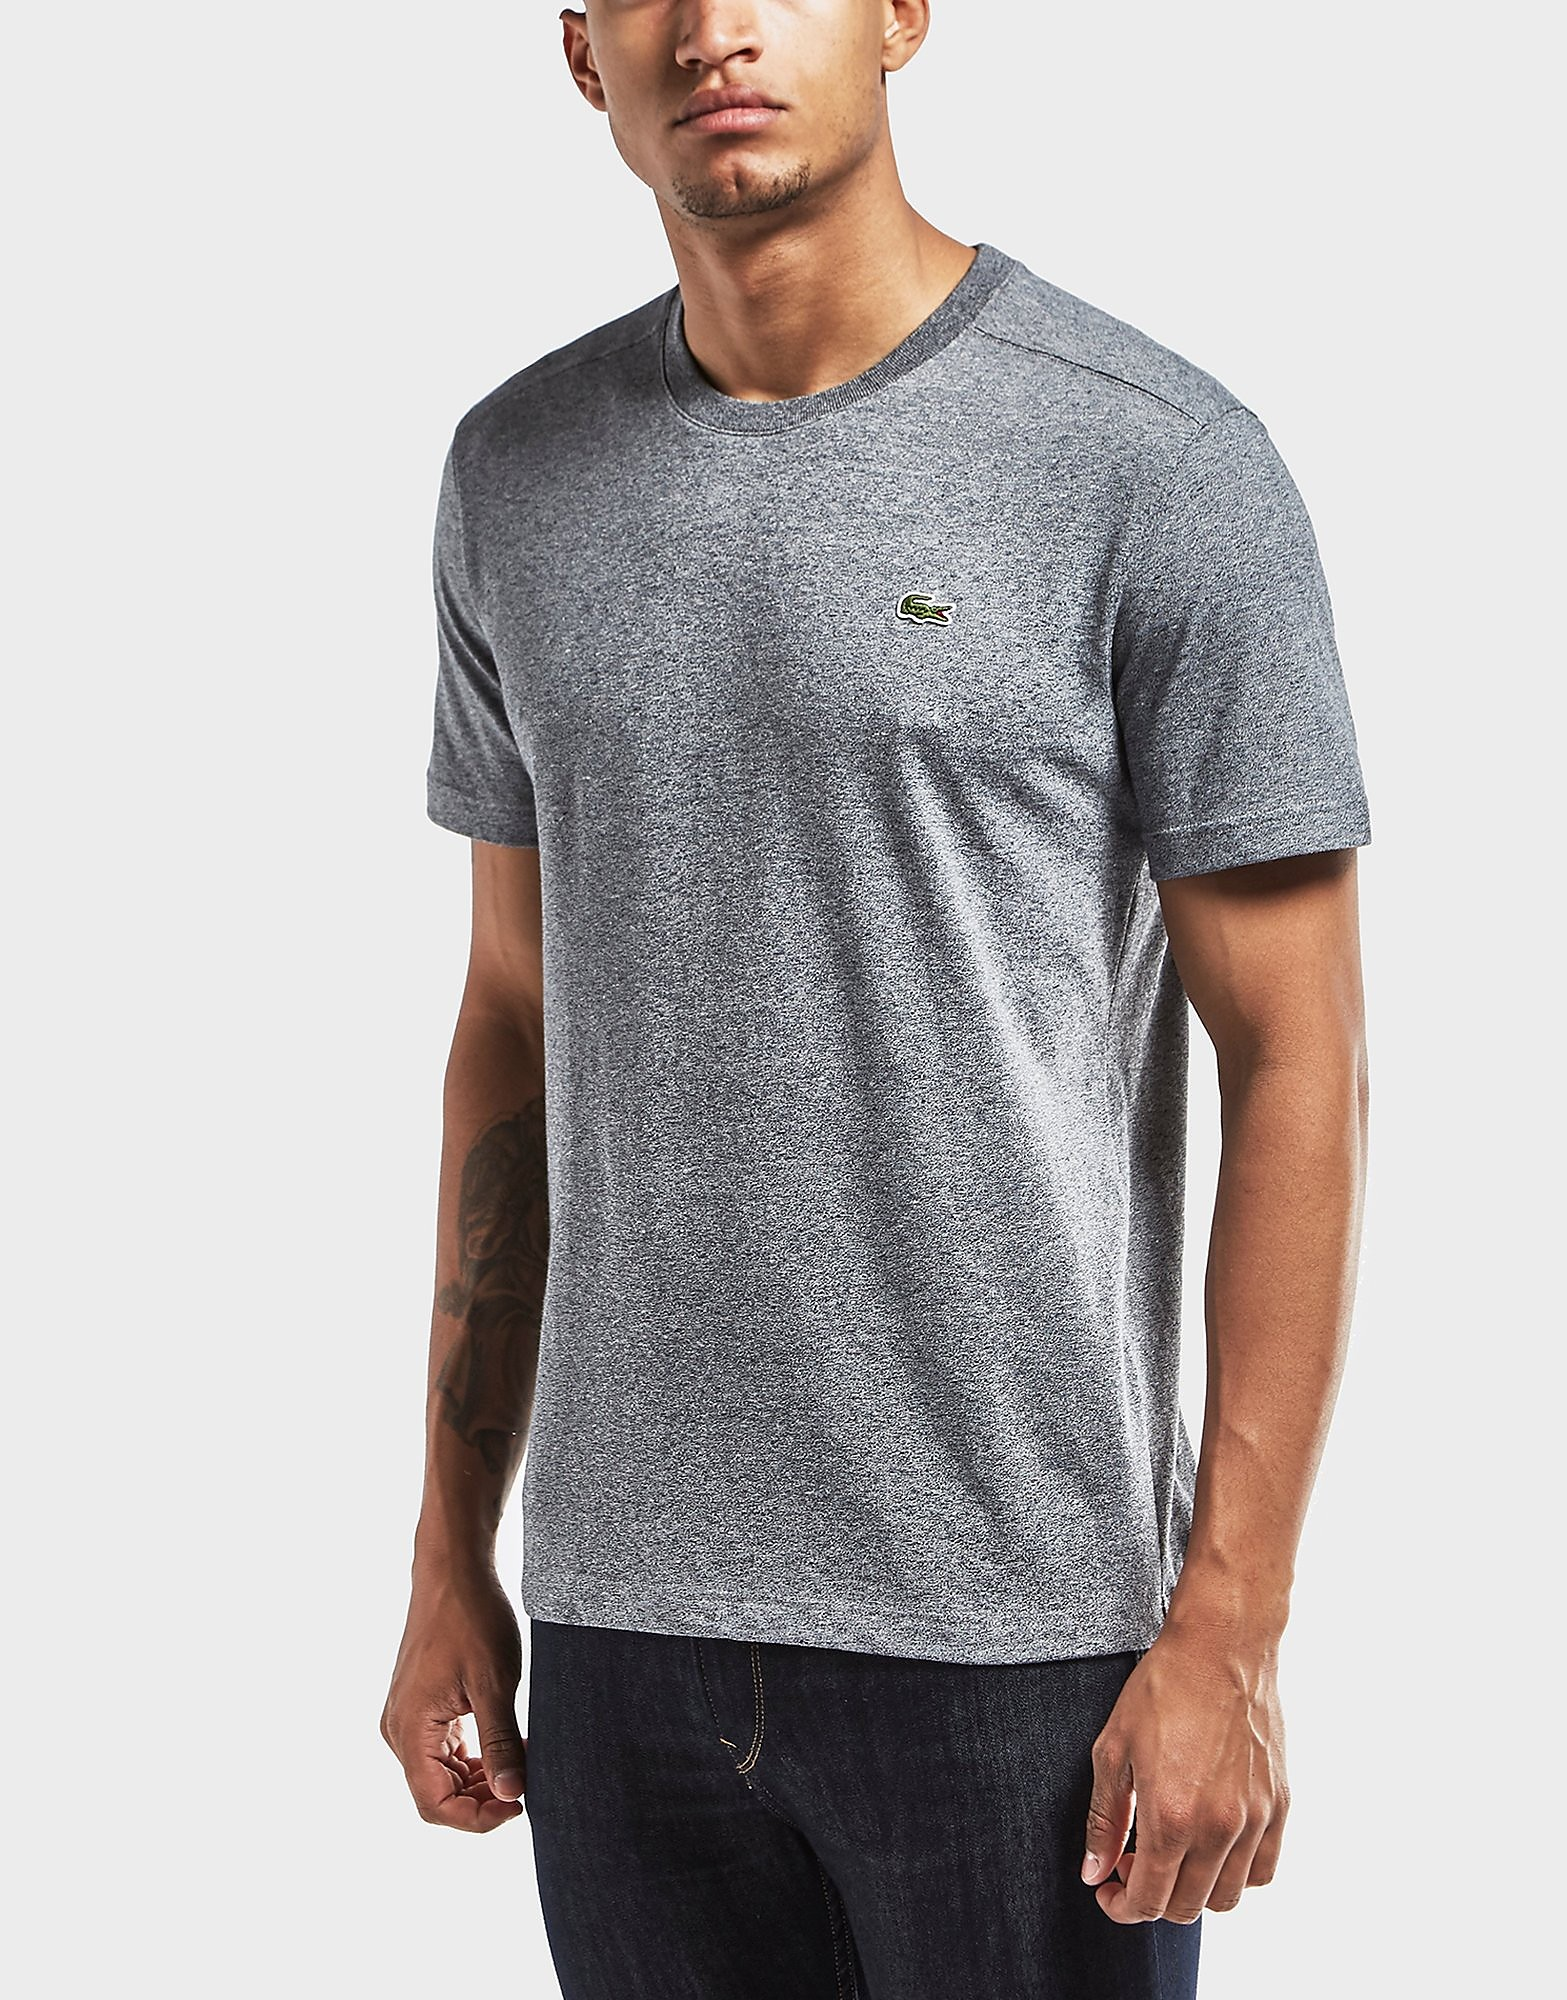 Lacoste Croc Short Sleeve T-Shirt